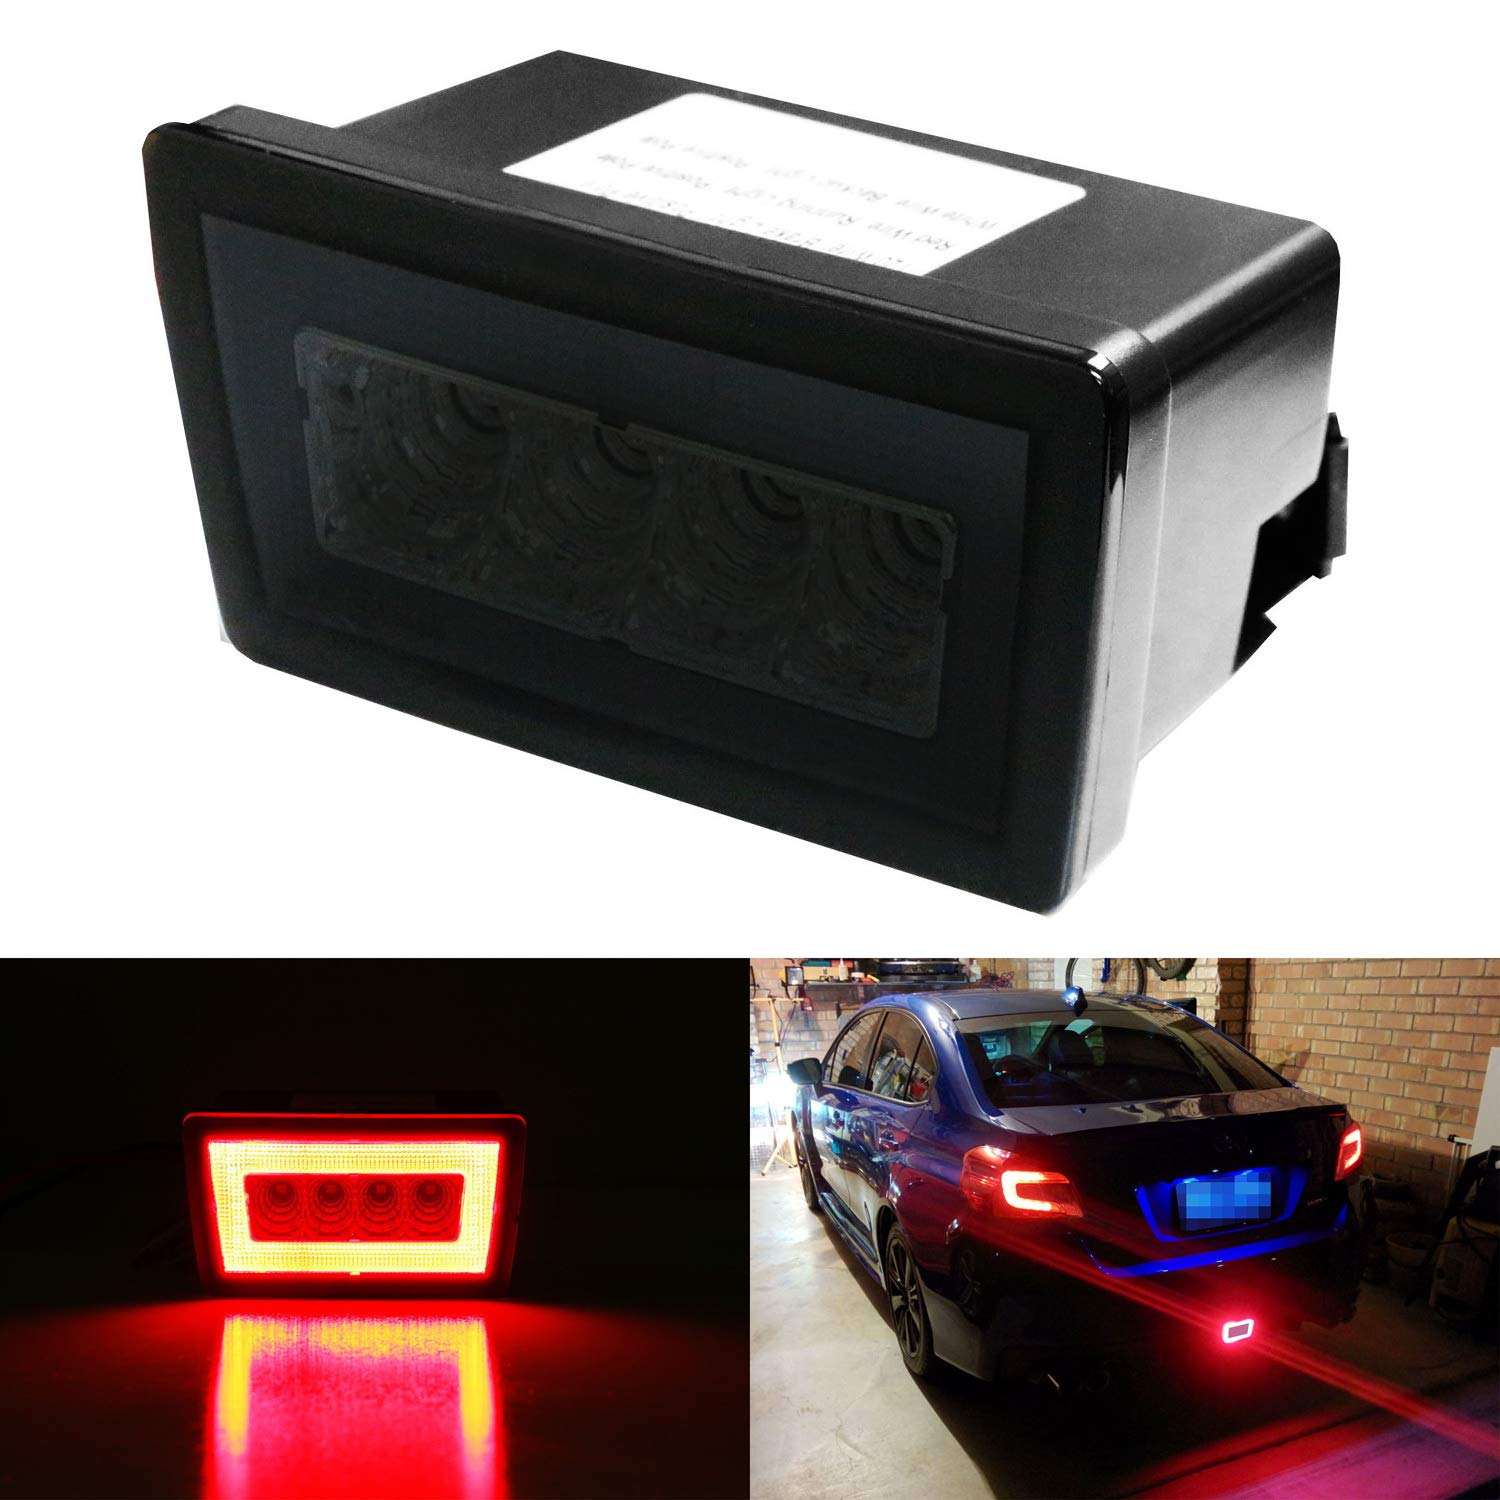 LED Tail Light Lamp Assembly LH RH Kit Pair Set of 2 for Jeep Compass SUV Truck